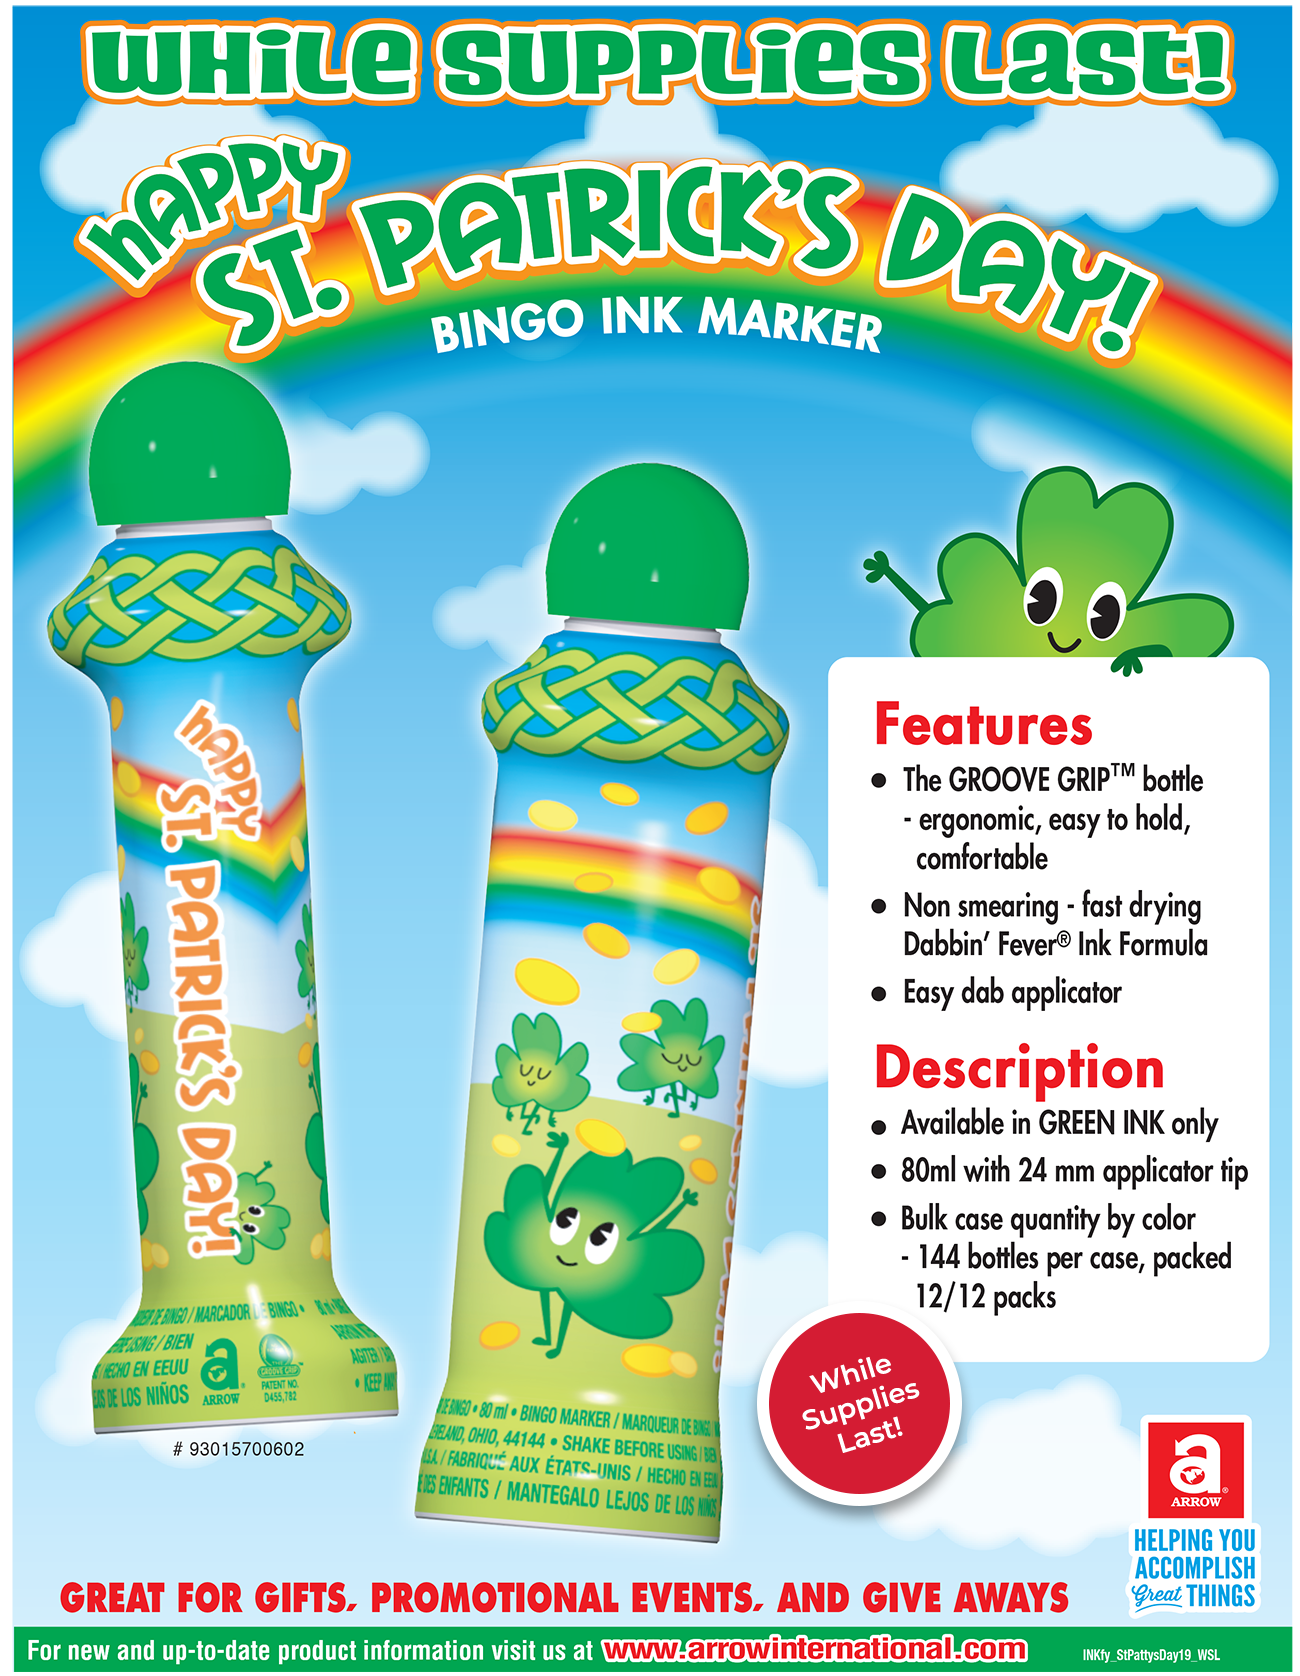 Happy St. Patrick's Day - While Supplies Last